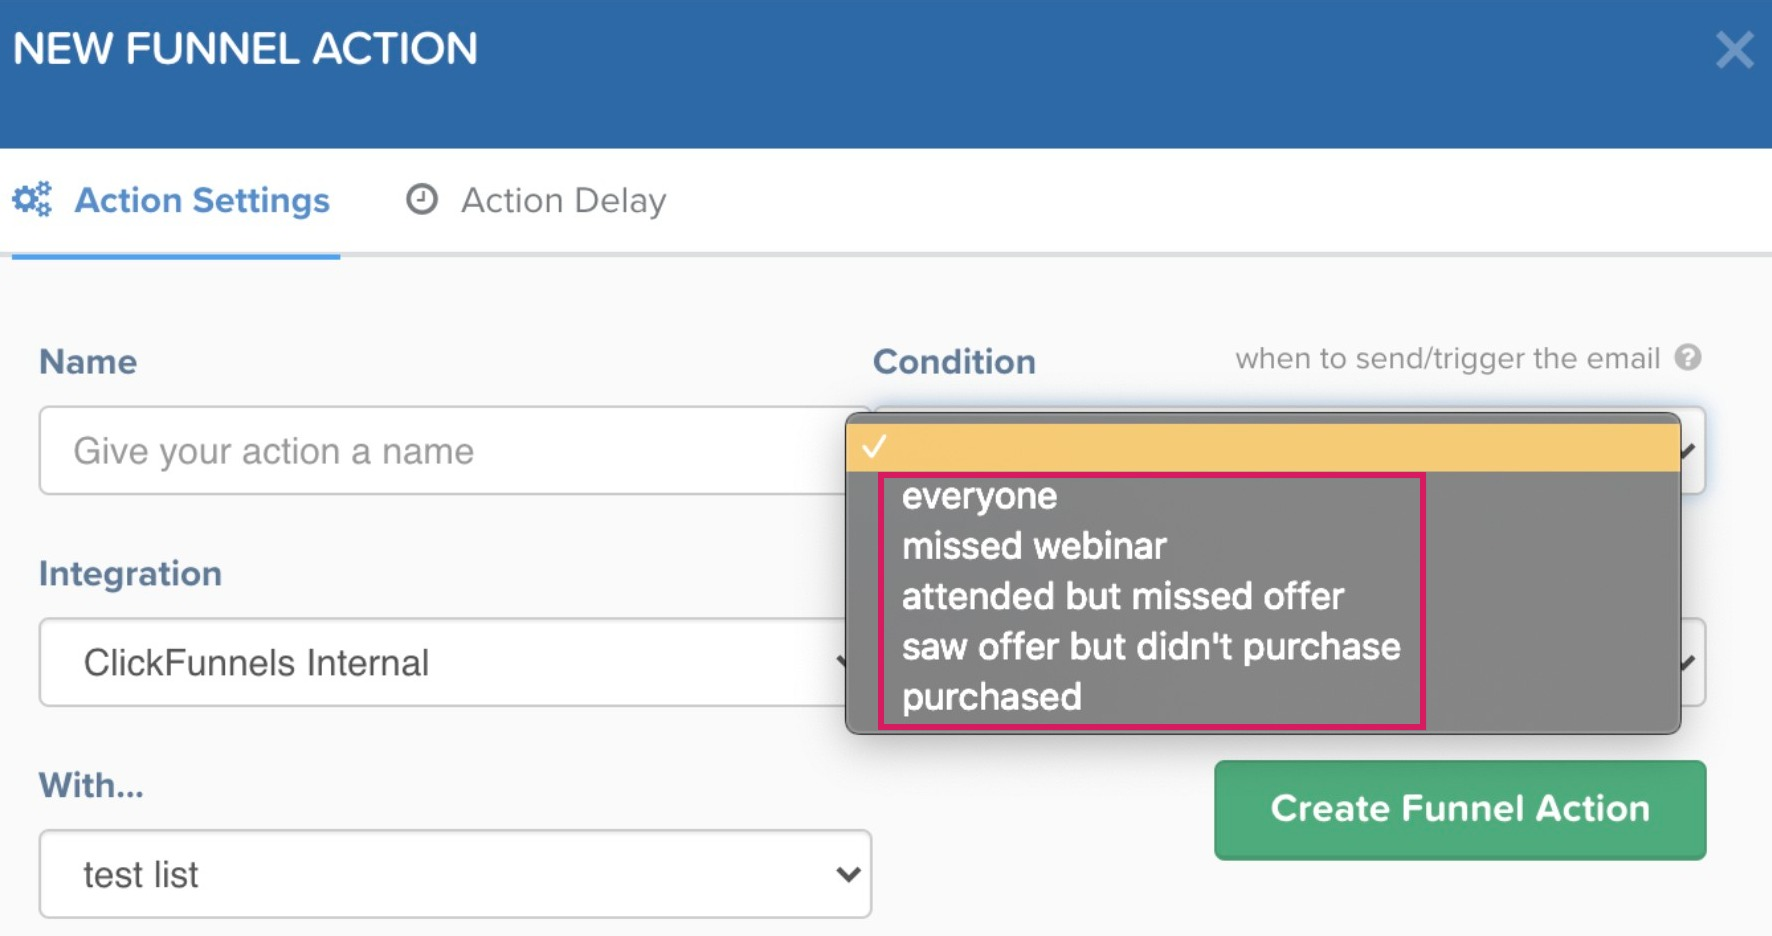 Adding_New_Actions_For_Your_Automated_Webinar_7.jpg